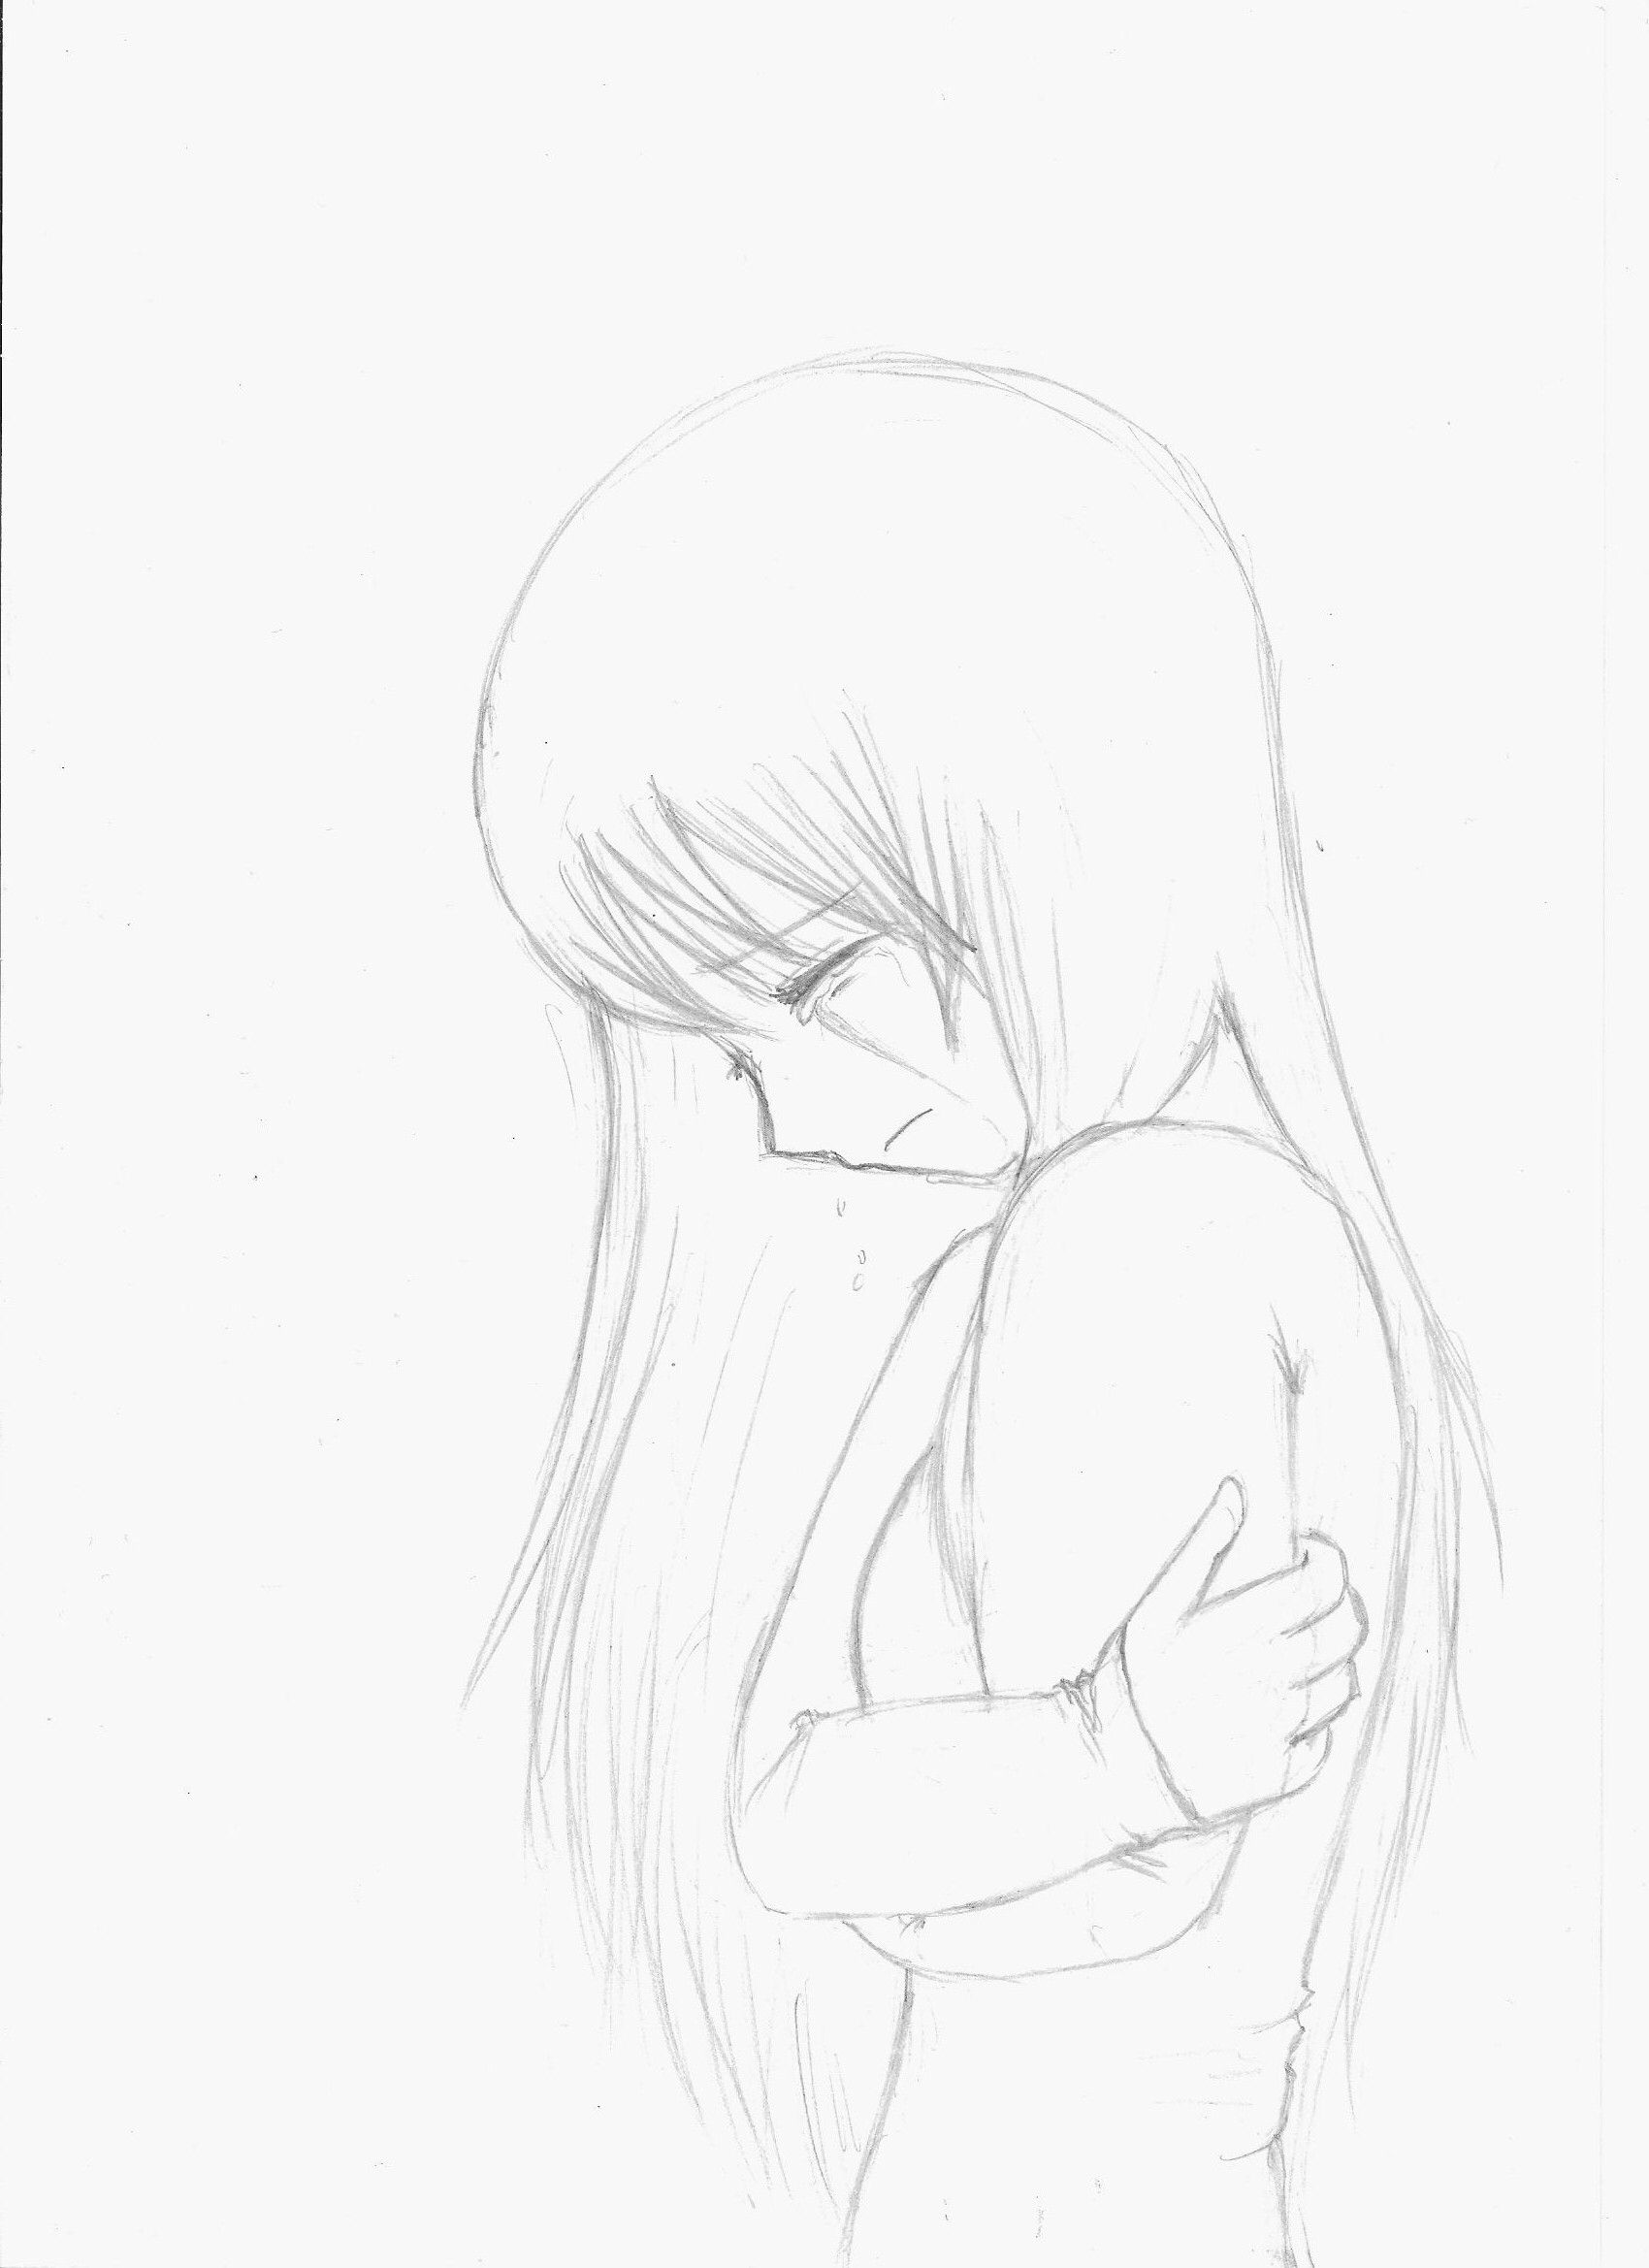 Crying girl sketch crying girl drawing anime girl crying sad anime girl